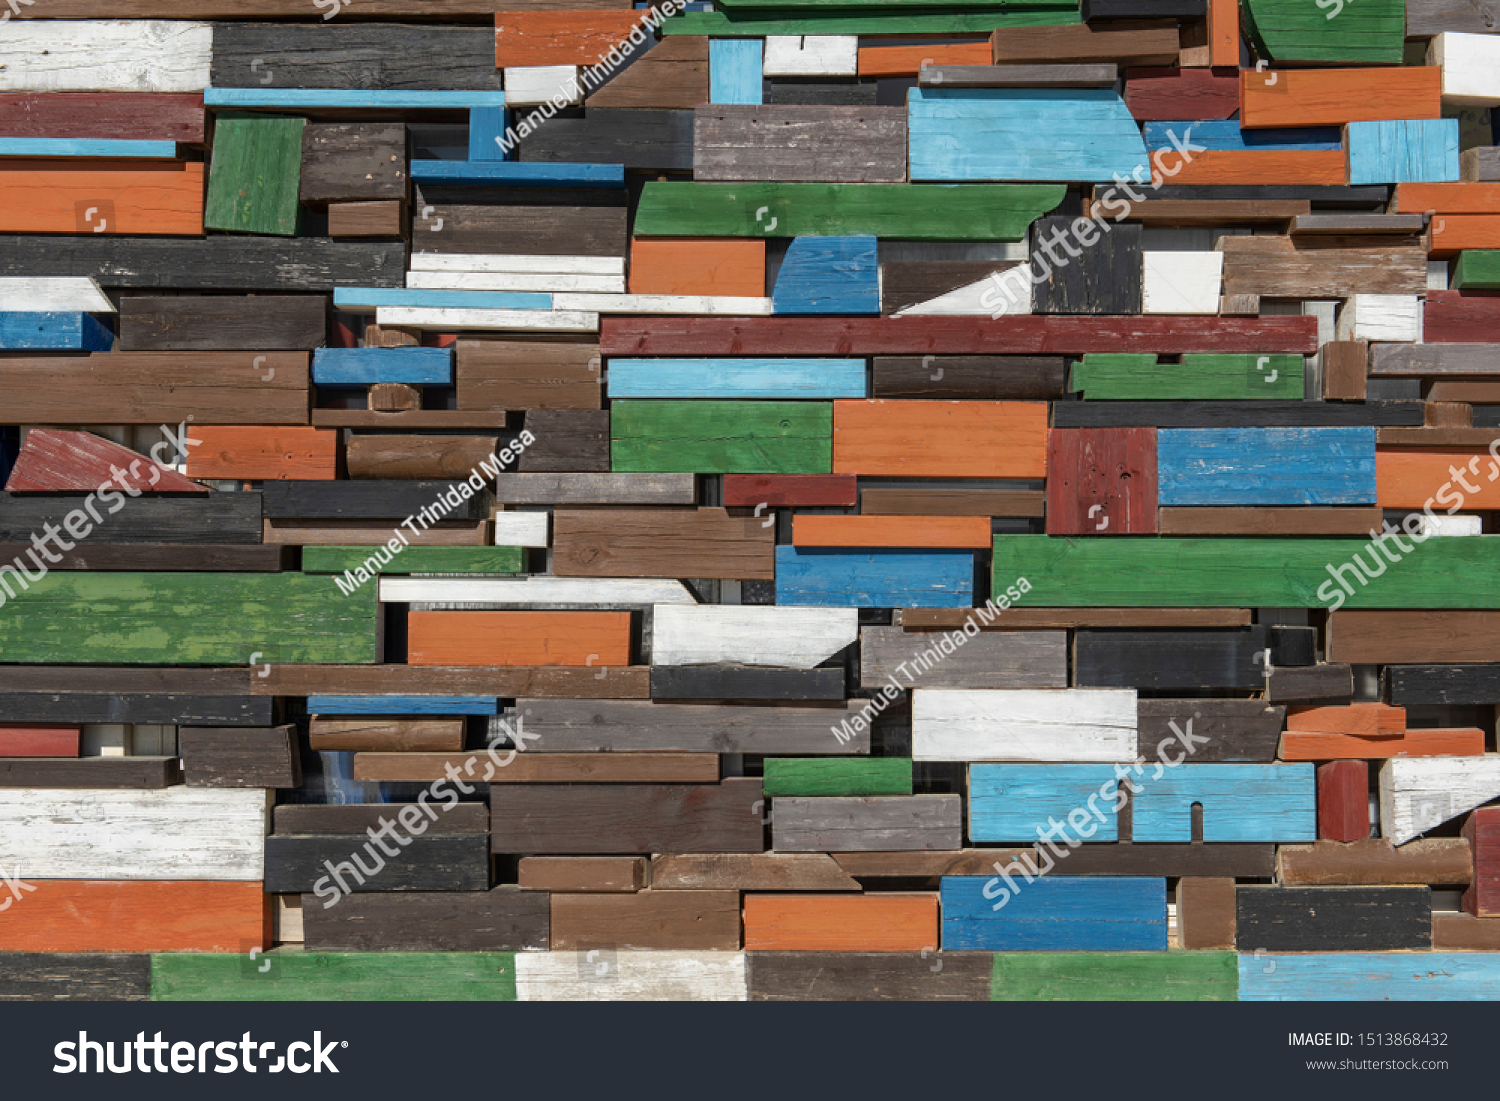 Wall of pieces of colored wood